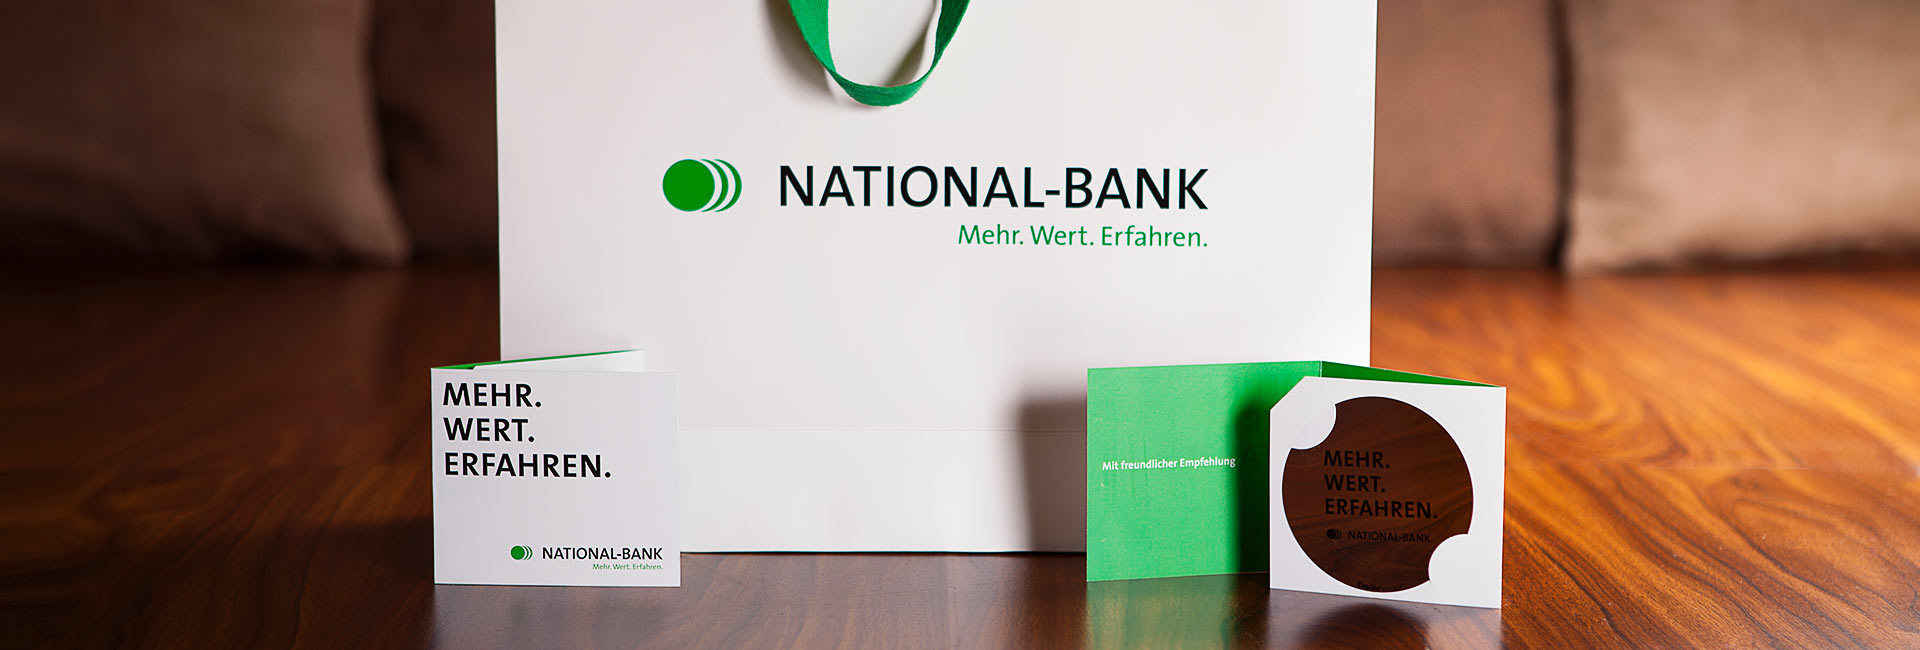 werbeartikel-national-bank-by-dita-moderna